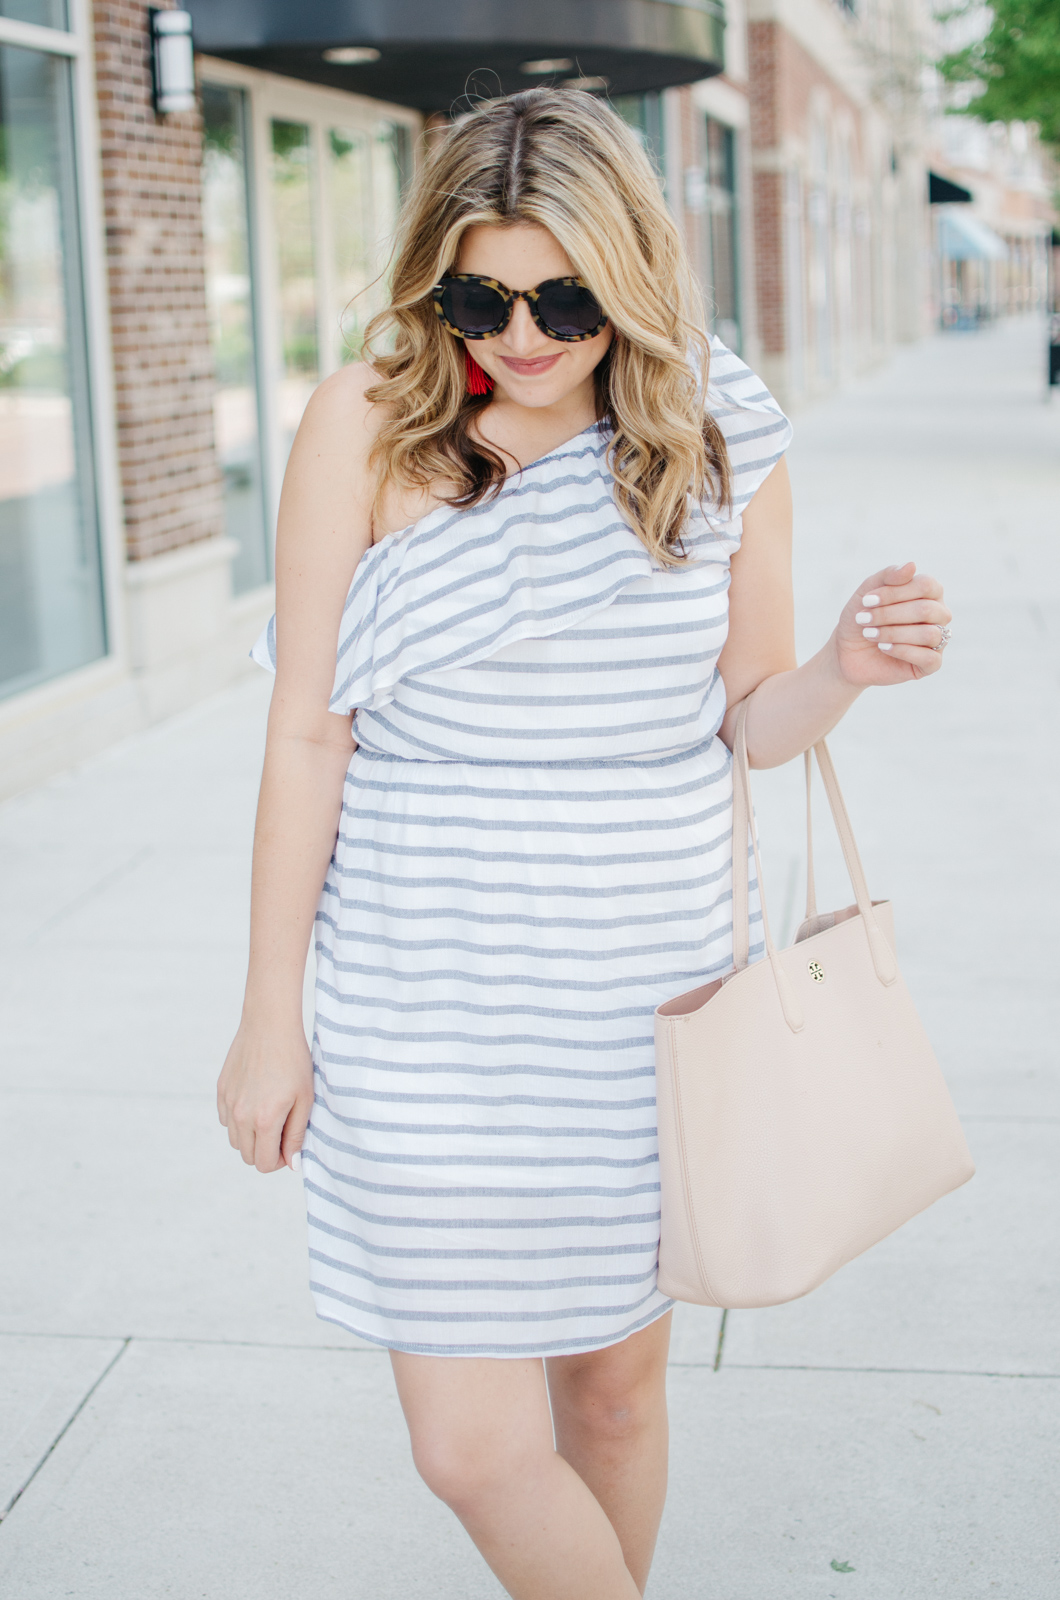 spring sundress outfit - stripe one shoulder dress | For more cute casual spring outfits, head to bylaurenm.com